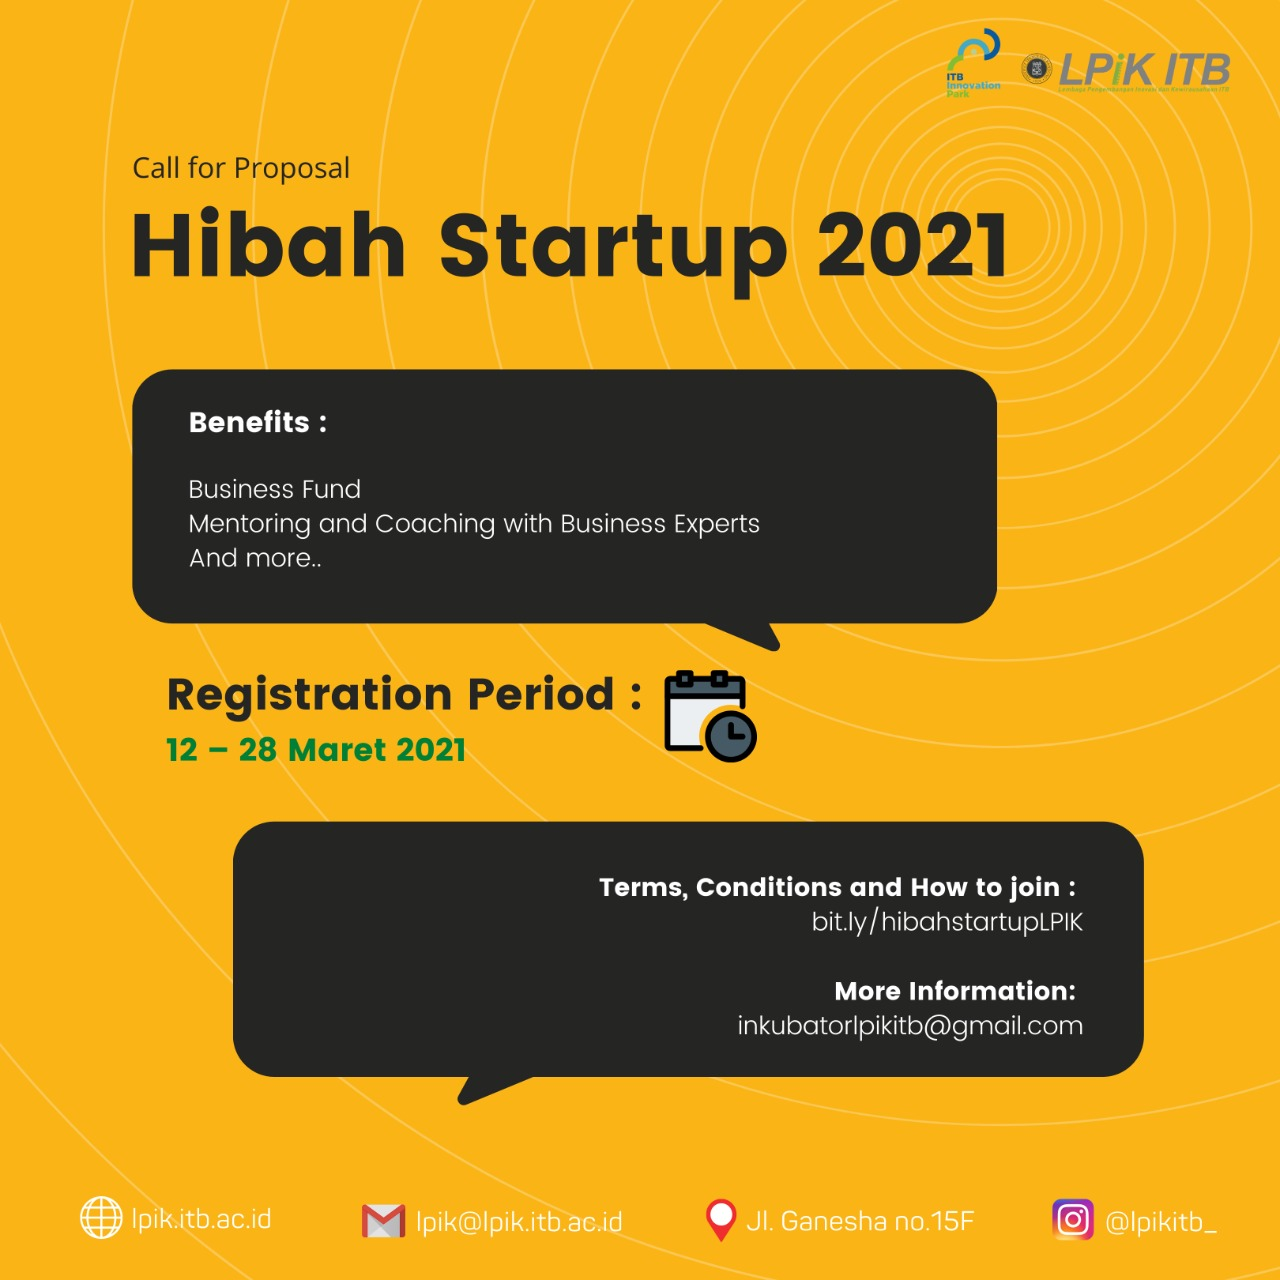 [CALL FOR PROPOSAL] HIBAH STARTUP 2021